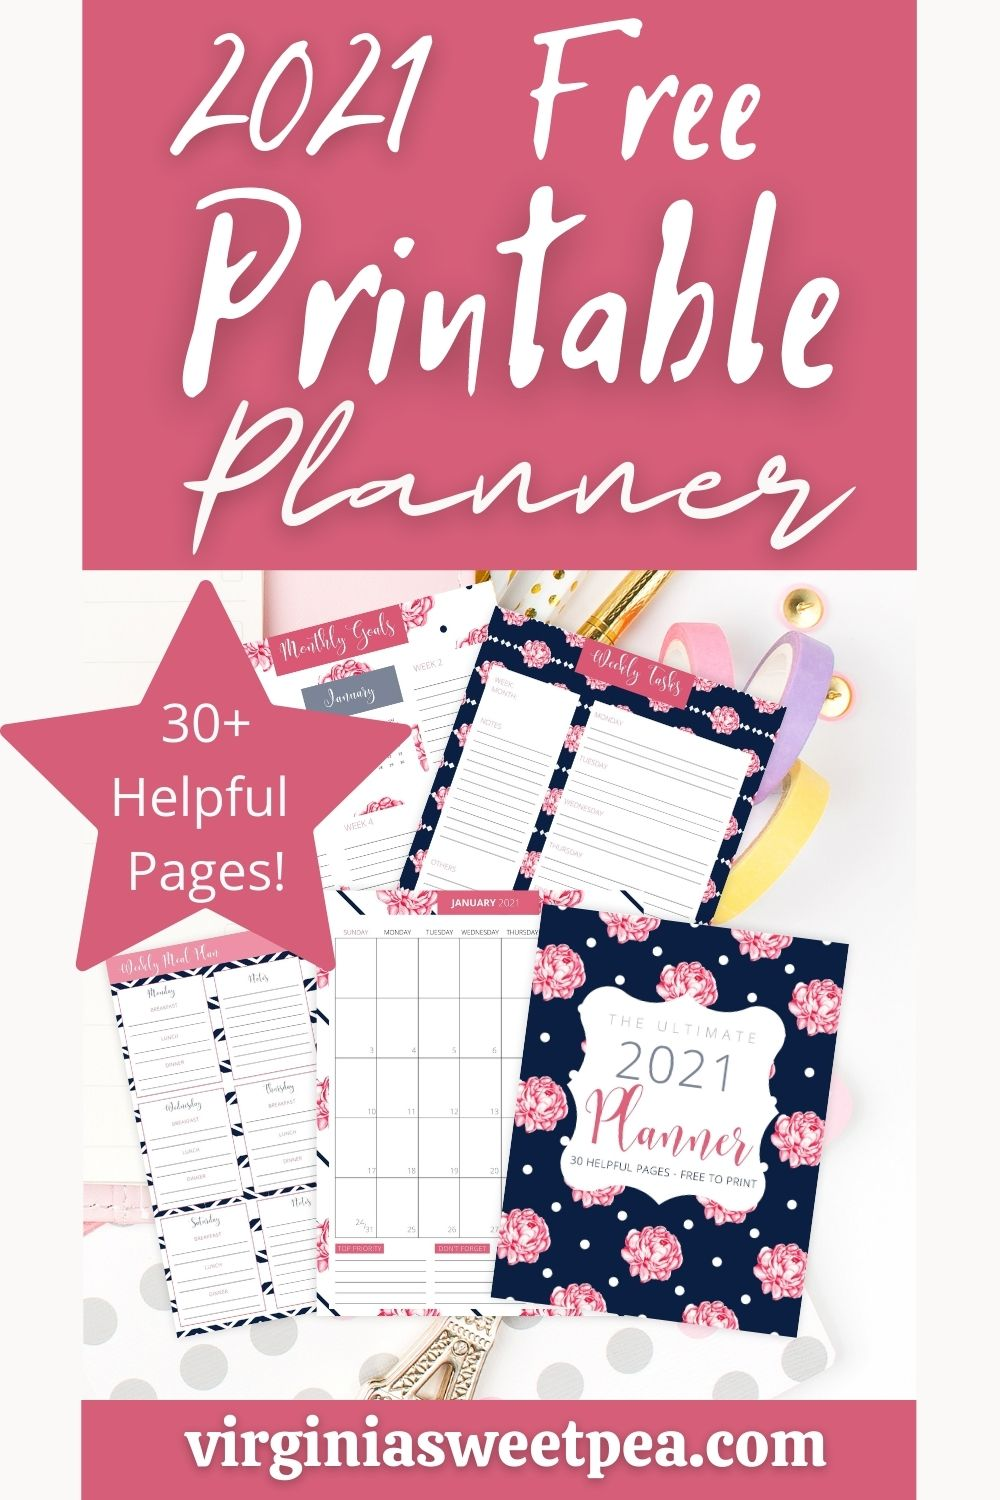 2021 Free Printable Planner - 30+ pages